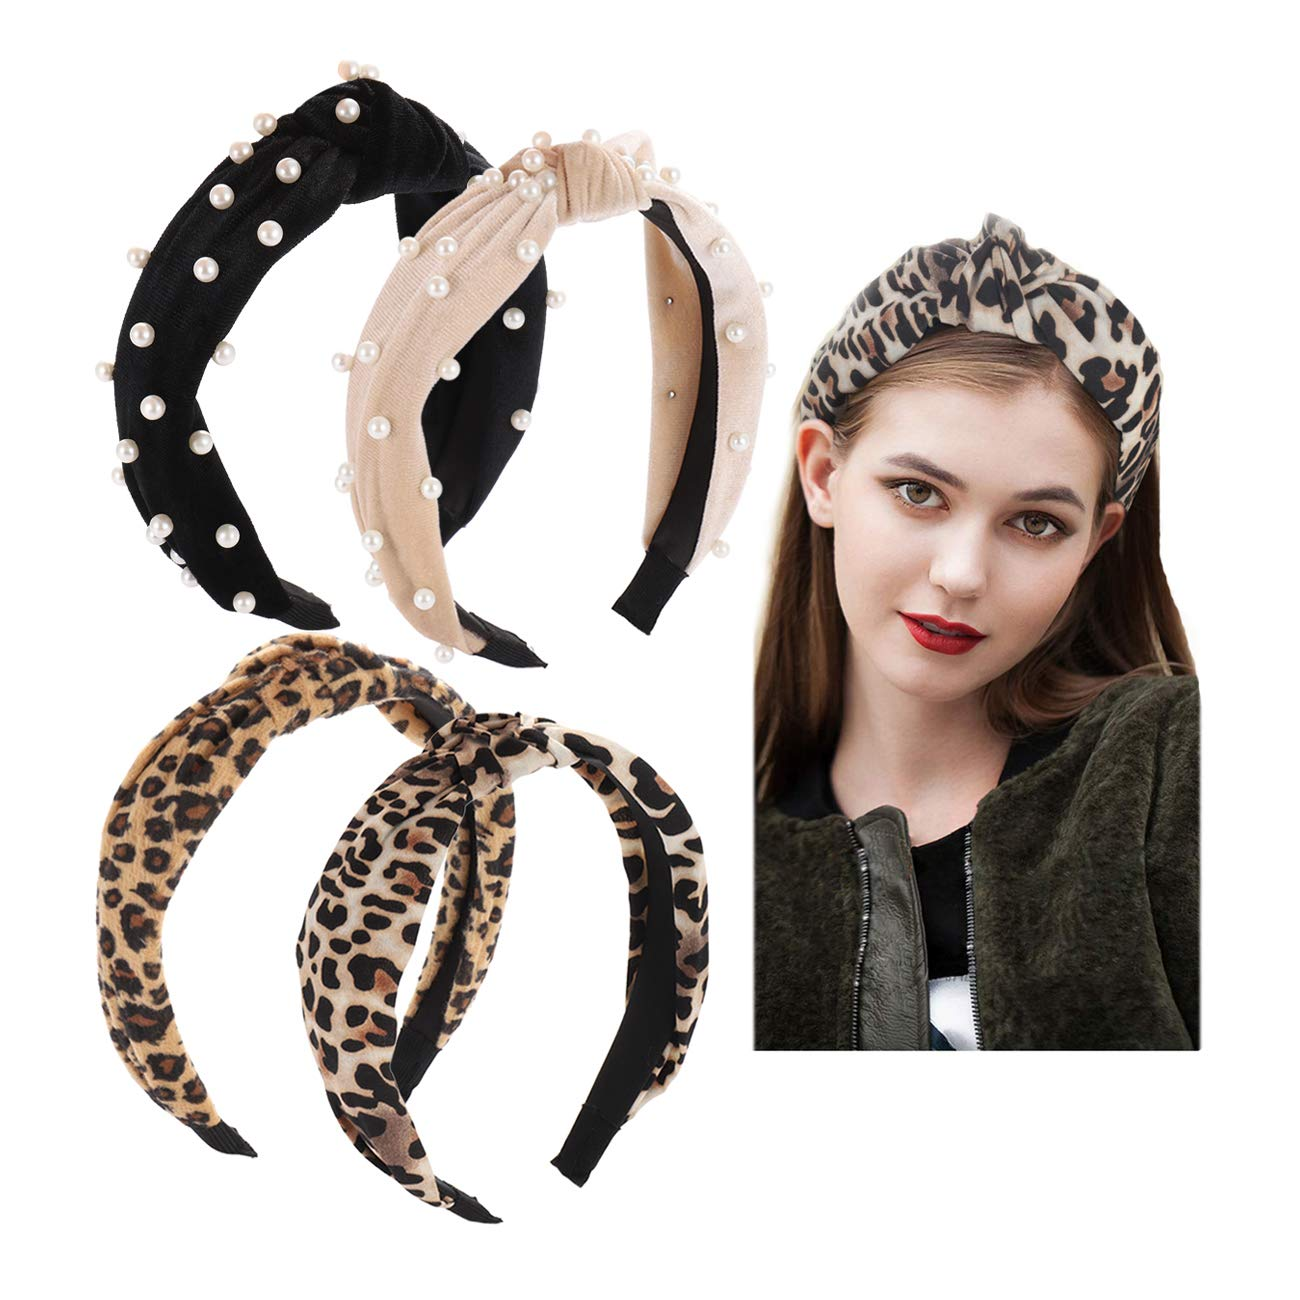 Wide Knotted Turban Headbands Vinatge Velvet Faux Pearl Hairband Animal Print Knotted Headbands Elastic Fashion Hair Hoops for women girls (A Set)